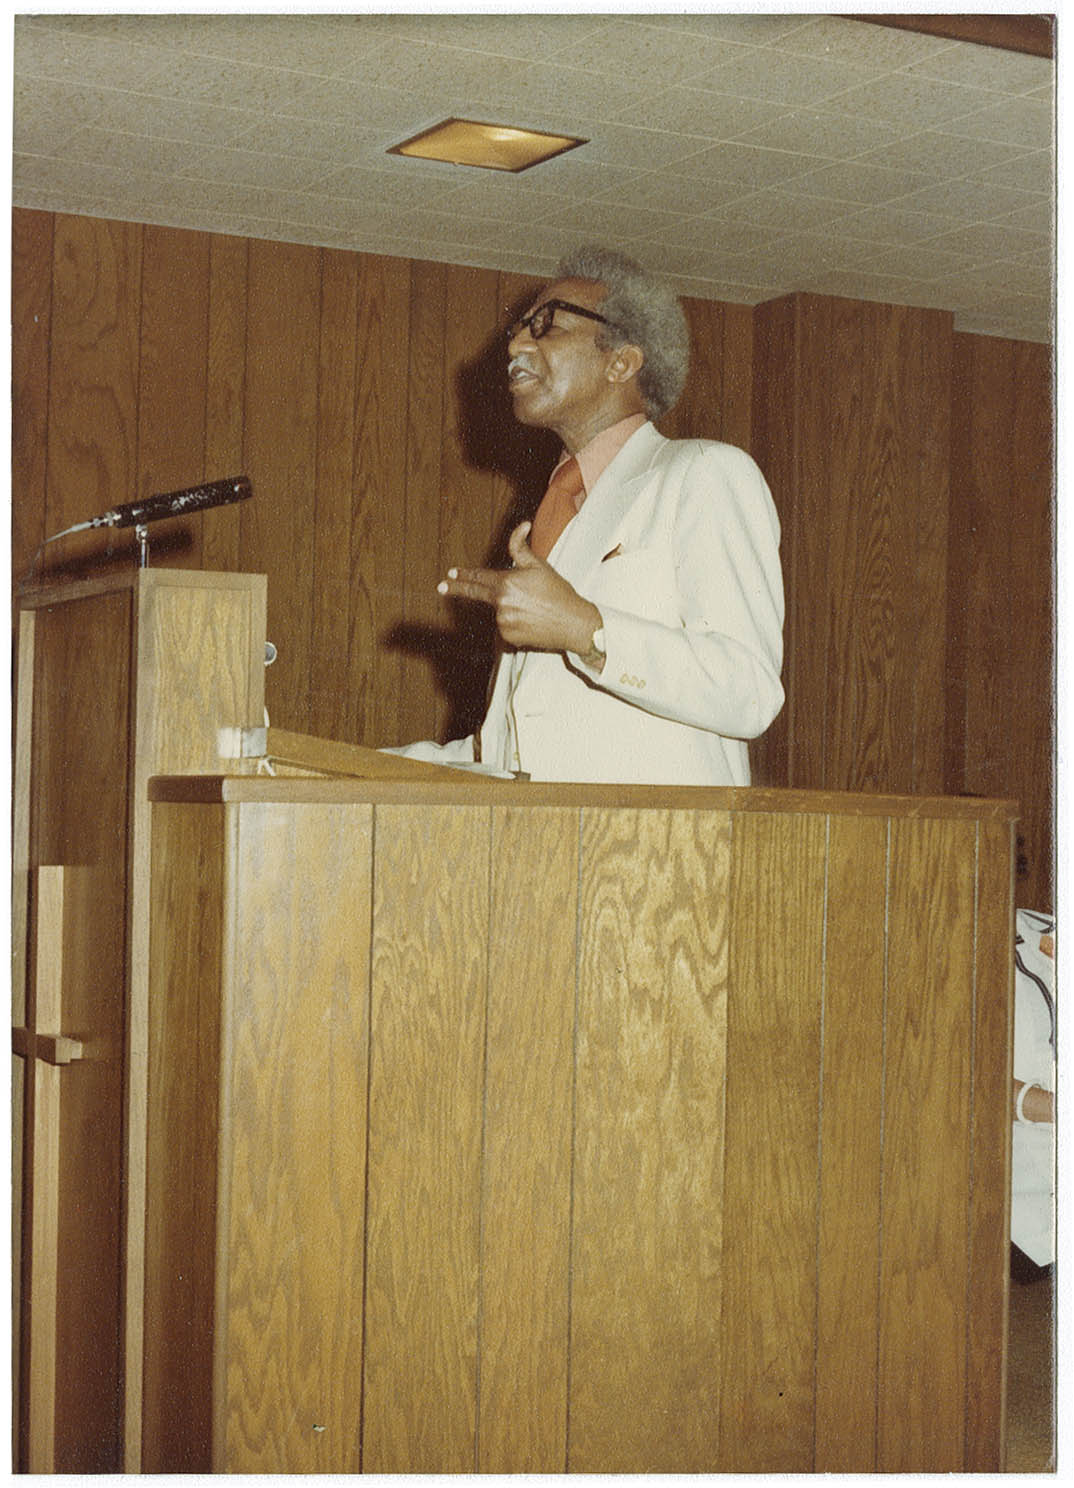 H. Carl Moultrie Gives Speech at Avery Class of 1932 Reunion